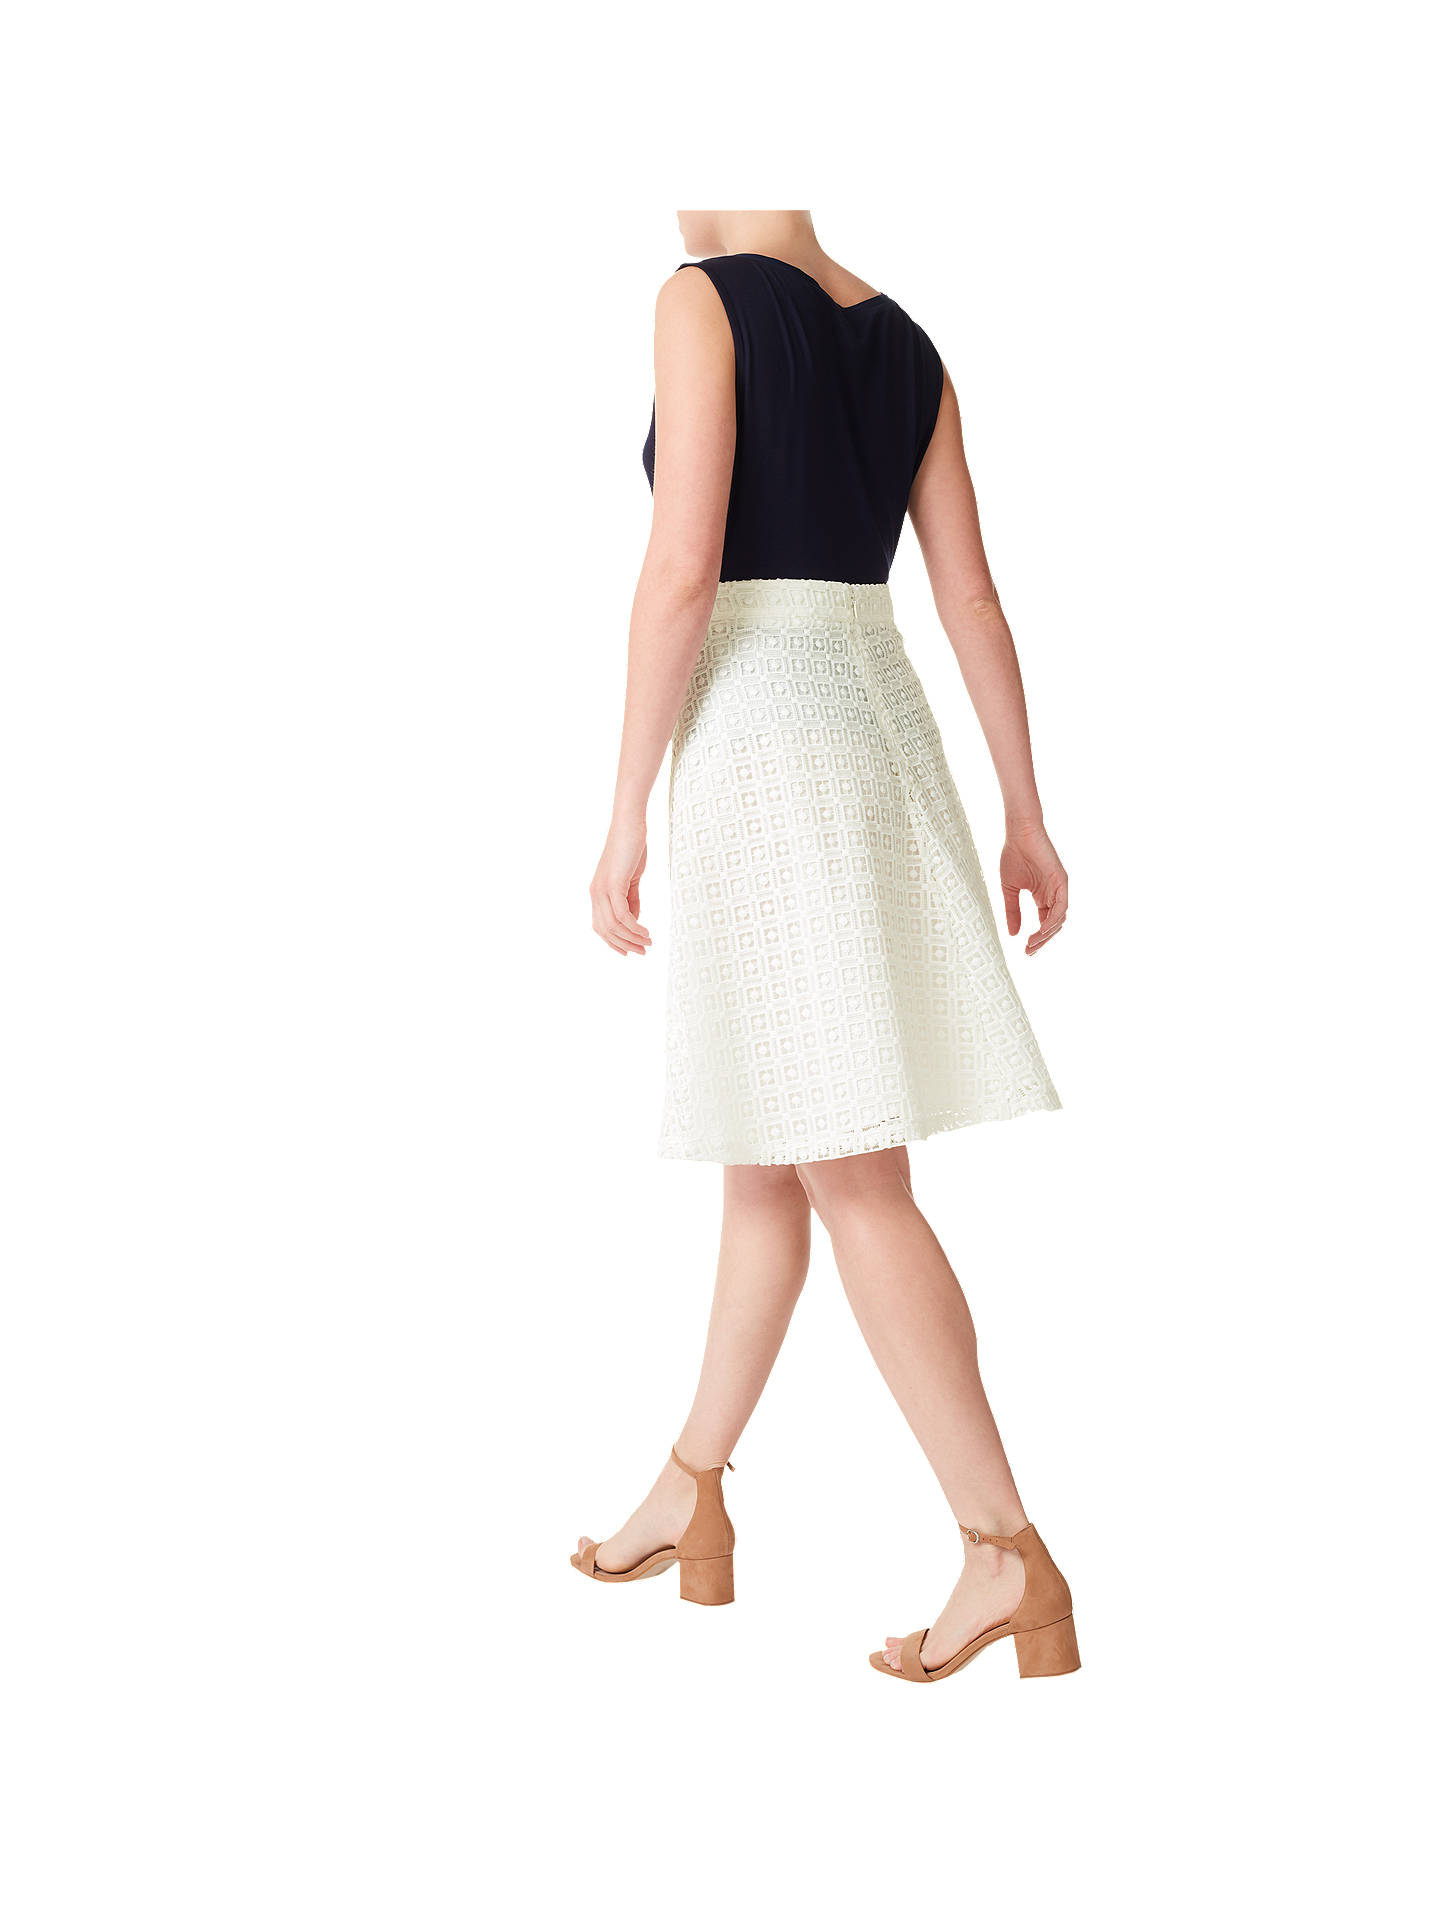 0e096b8d17 ... Buy Precis Petite Lace Midi Skirt, White, 6 Online at johnlewis.com ...